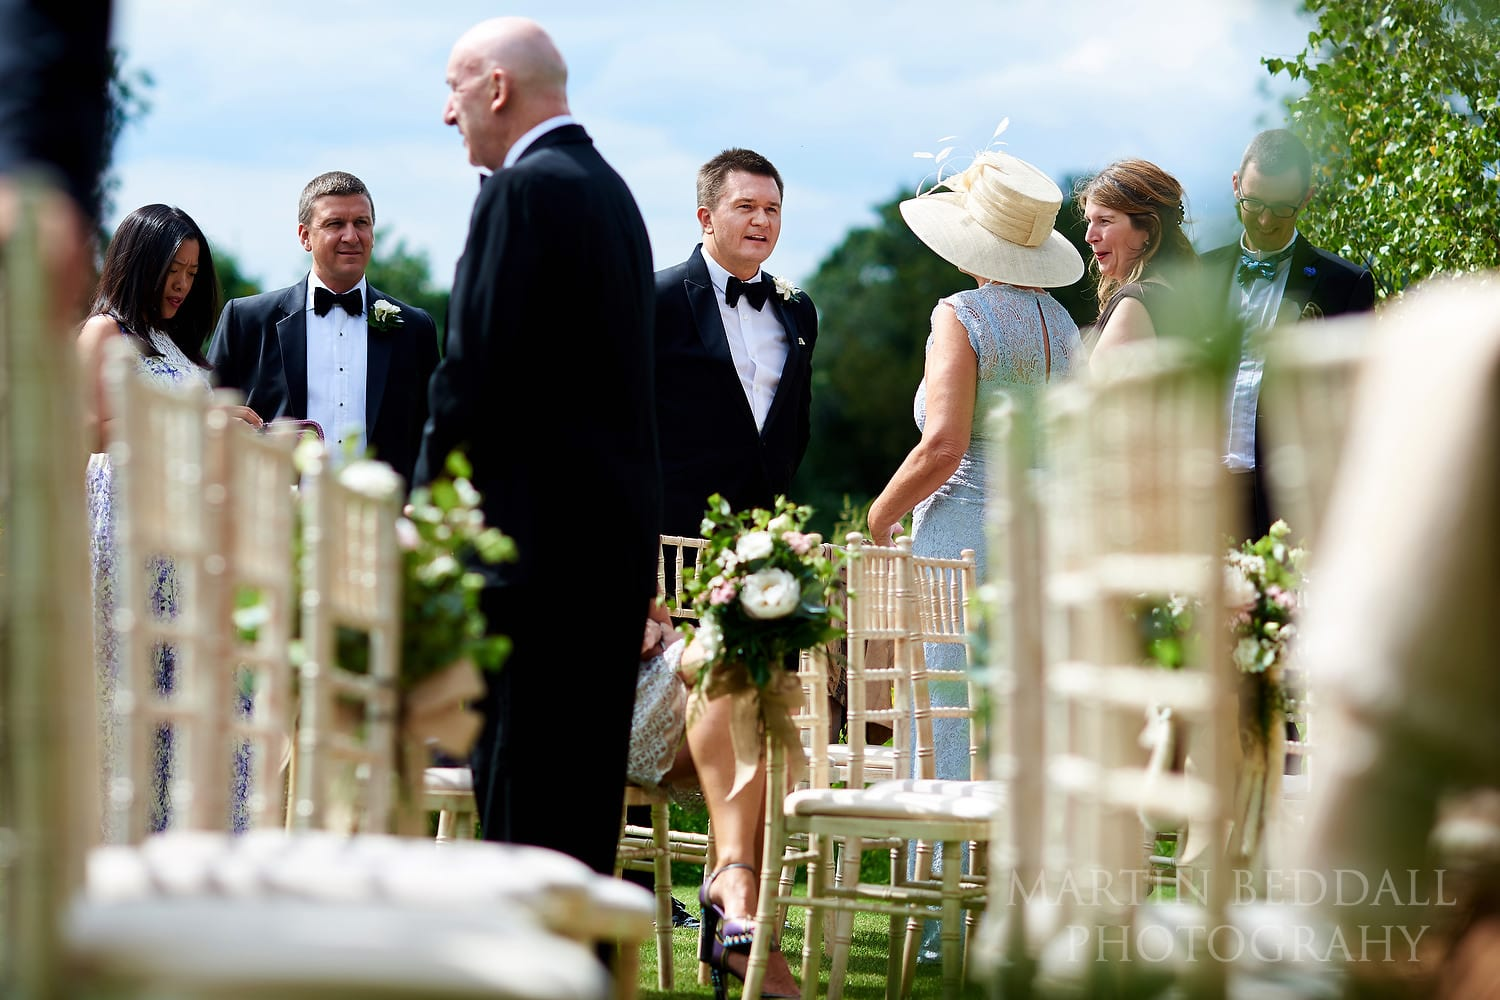 Groom greets arriving guests at Coworth Park wedding